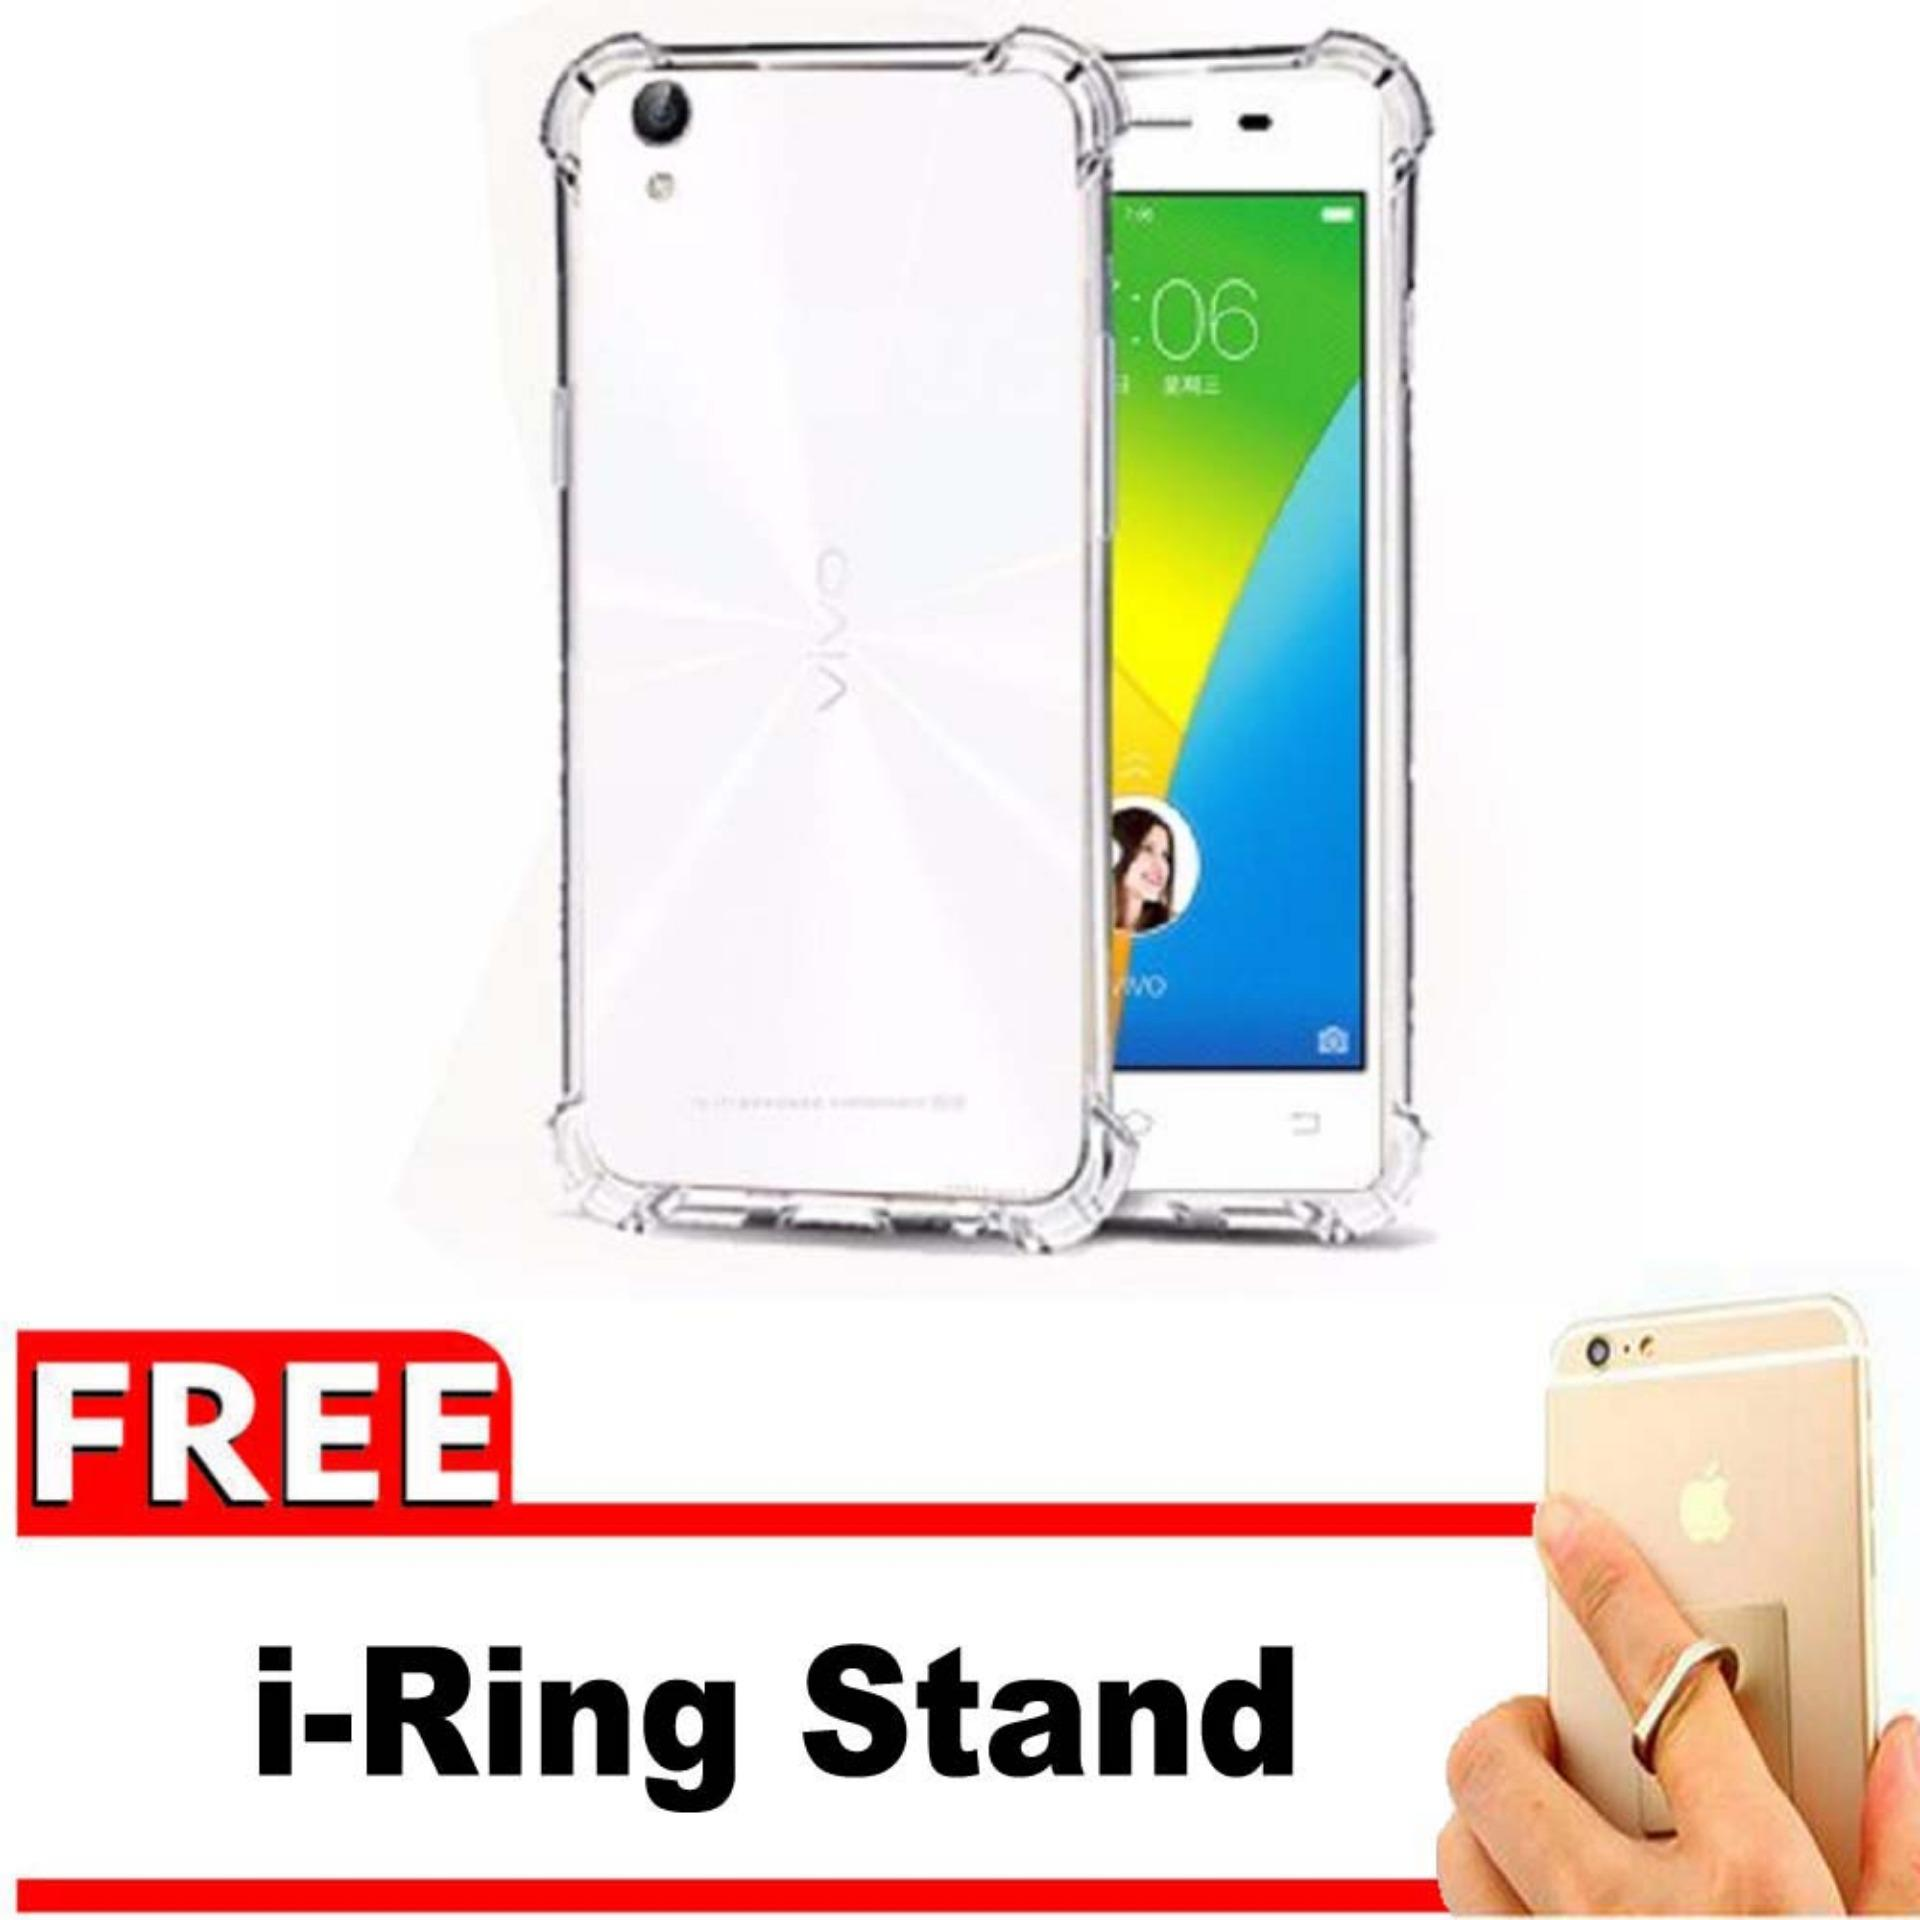 ShockCase for Vivo Y51 / Y51L / Y51T / Y51S | Premium Softcase Jelly Anti Crack Shockproof - Gratis Free iRing Stand Phone Holder - Transparan